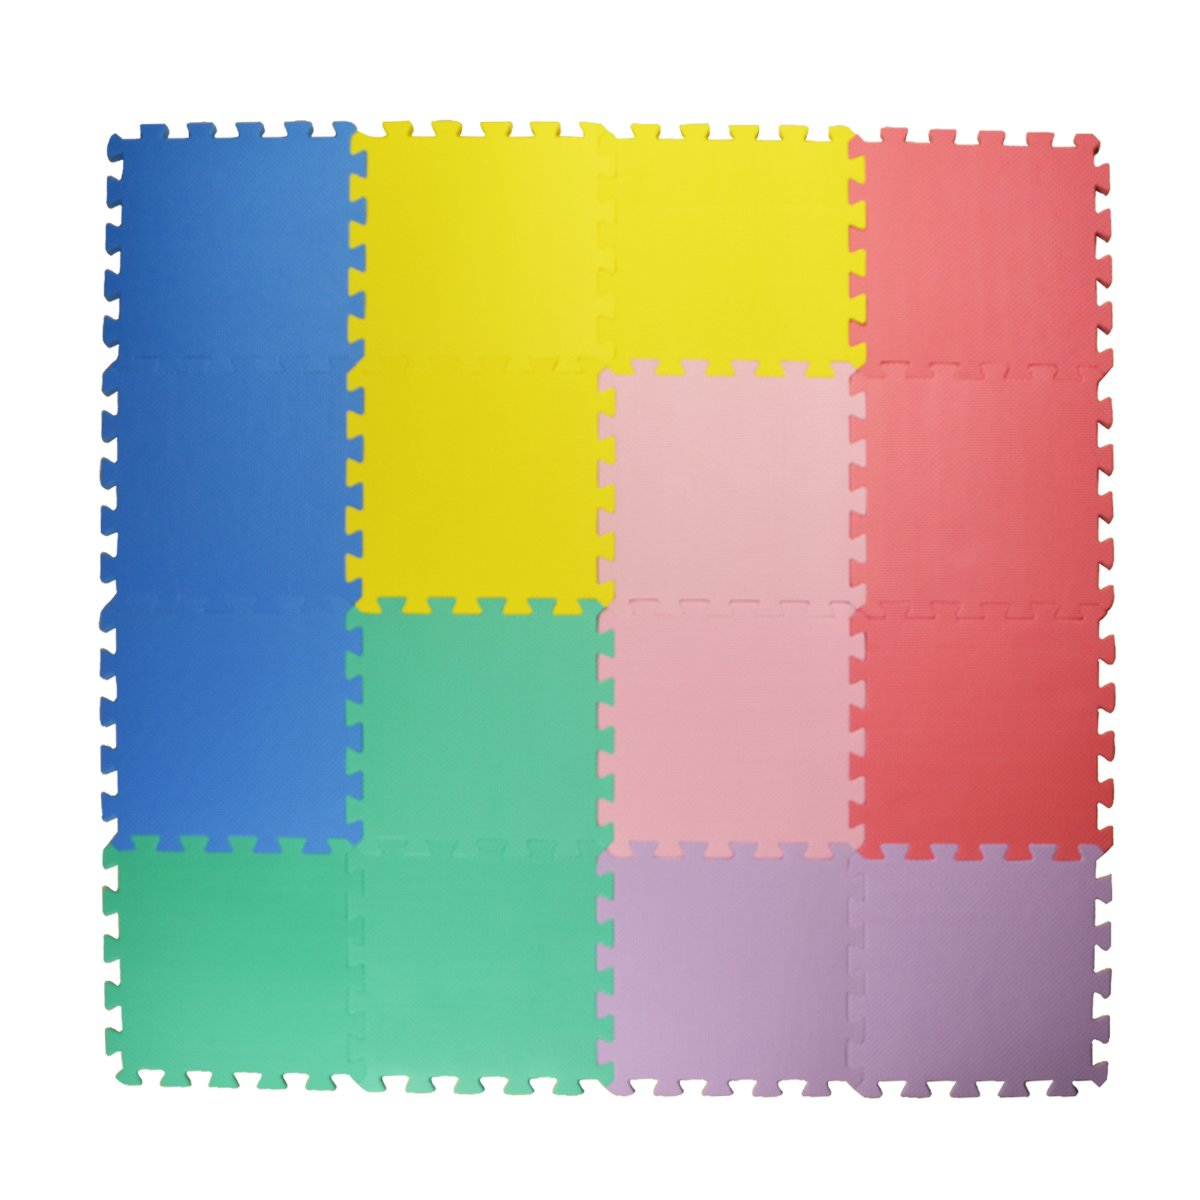 8137b040ac9 Get Quotations · Hippih Kid s Multicolored Puzzle Play Mat Foam Play Mats  (16 Tiles ) Kids Puzzle Playmat